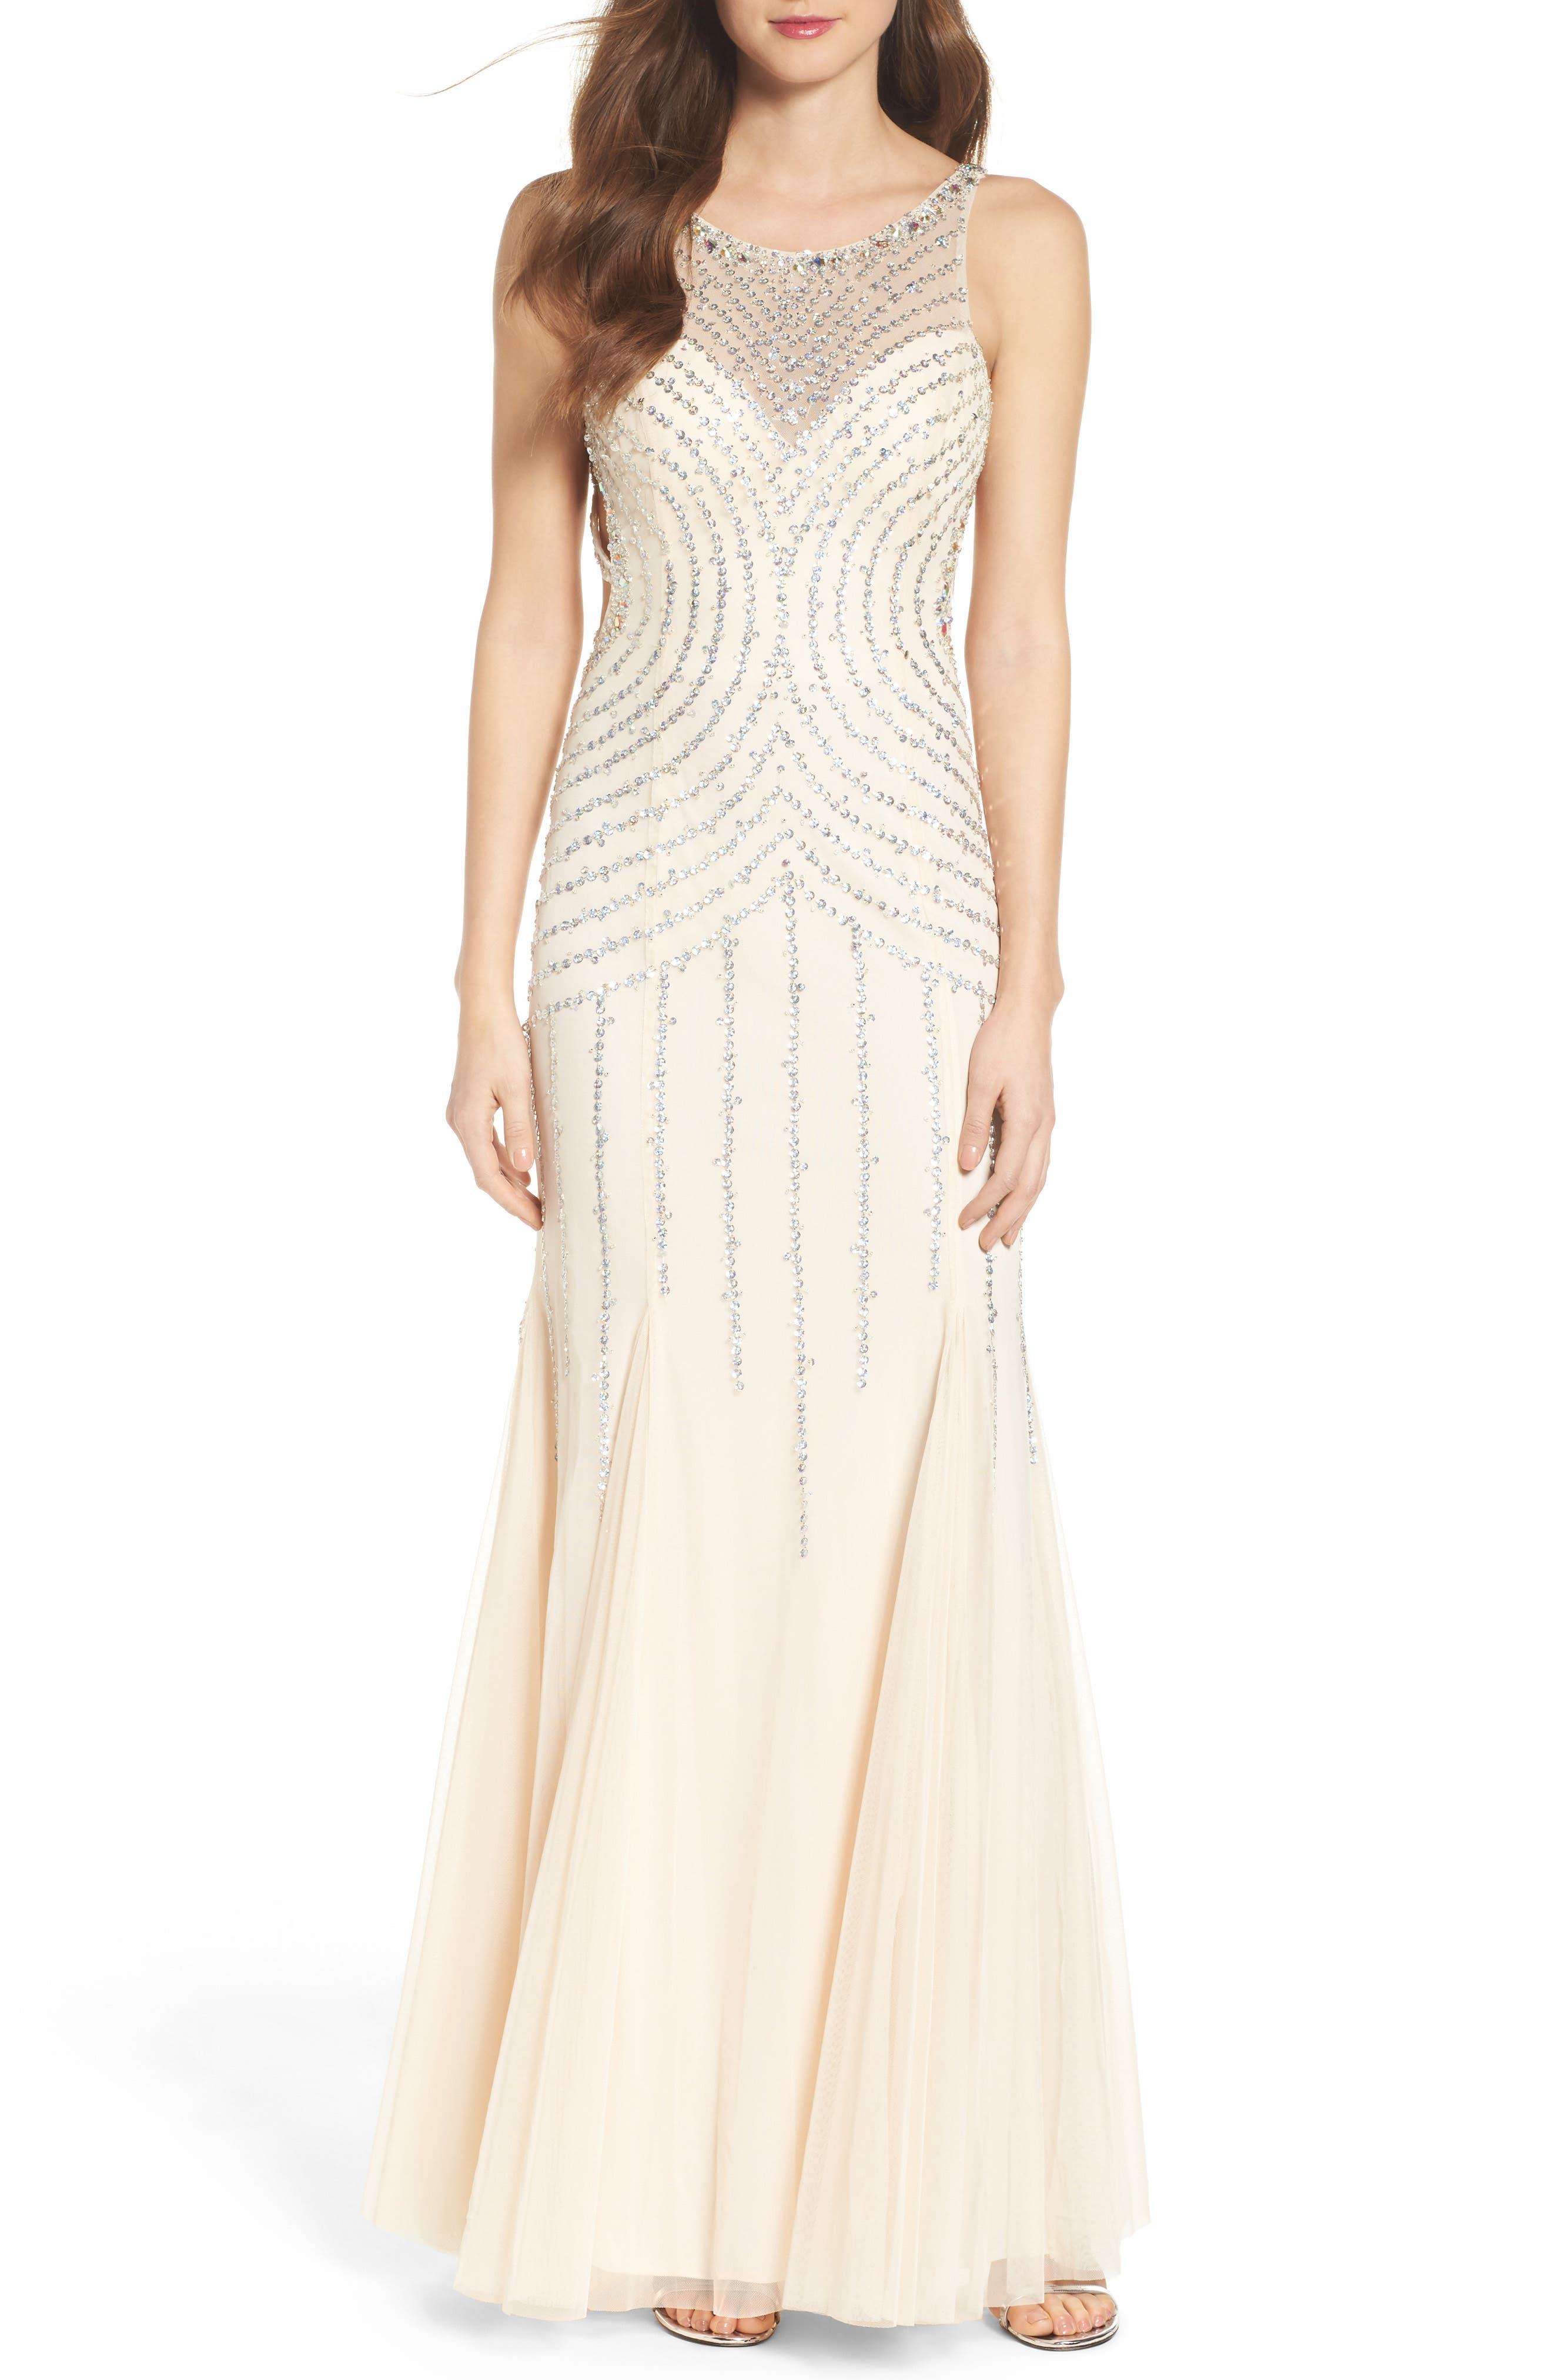 SEAN COLLECTION Embellished Mesh Mermaid Gown